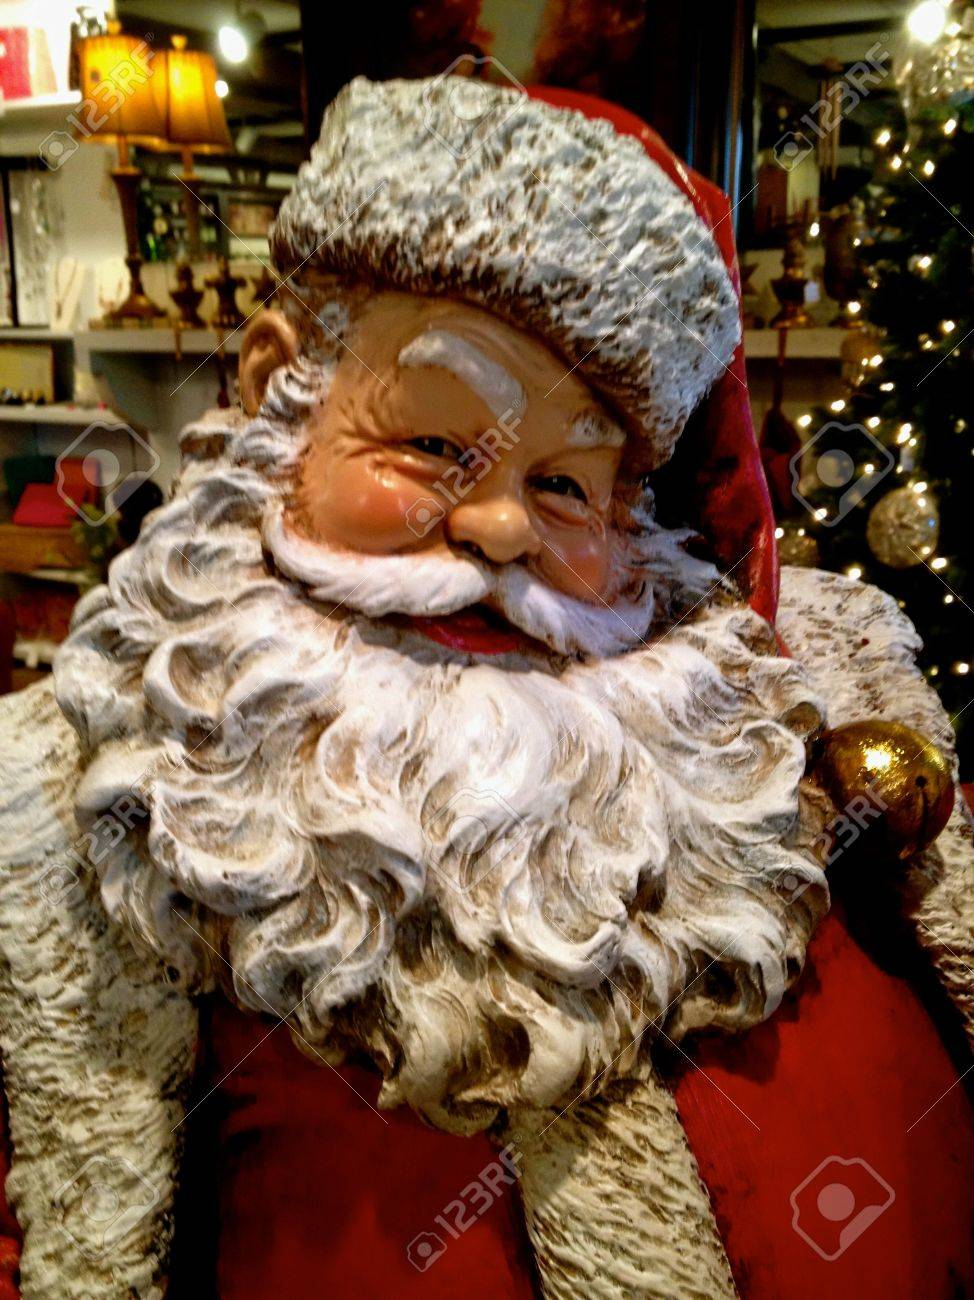 Statue Pere Noel Santa Claus Statue 2 Stock Photo, Picture And Royalty Free Image